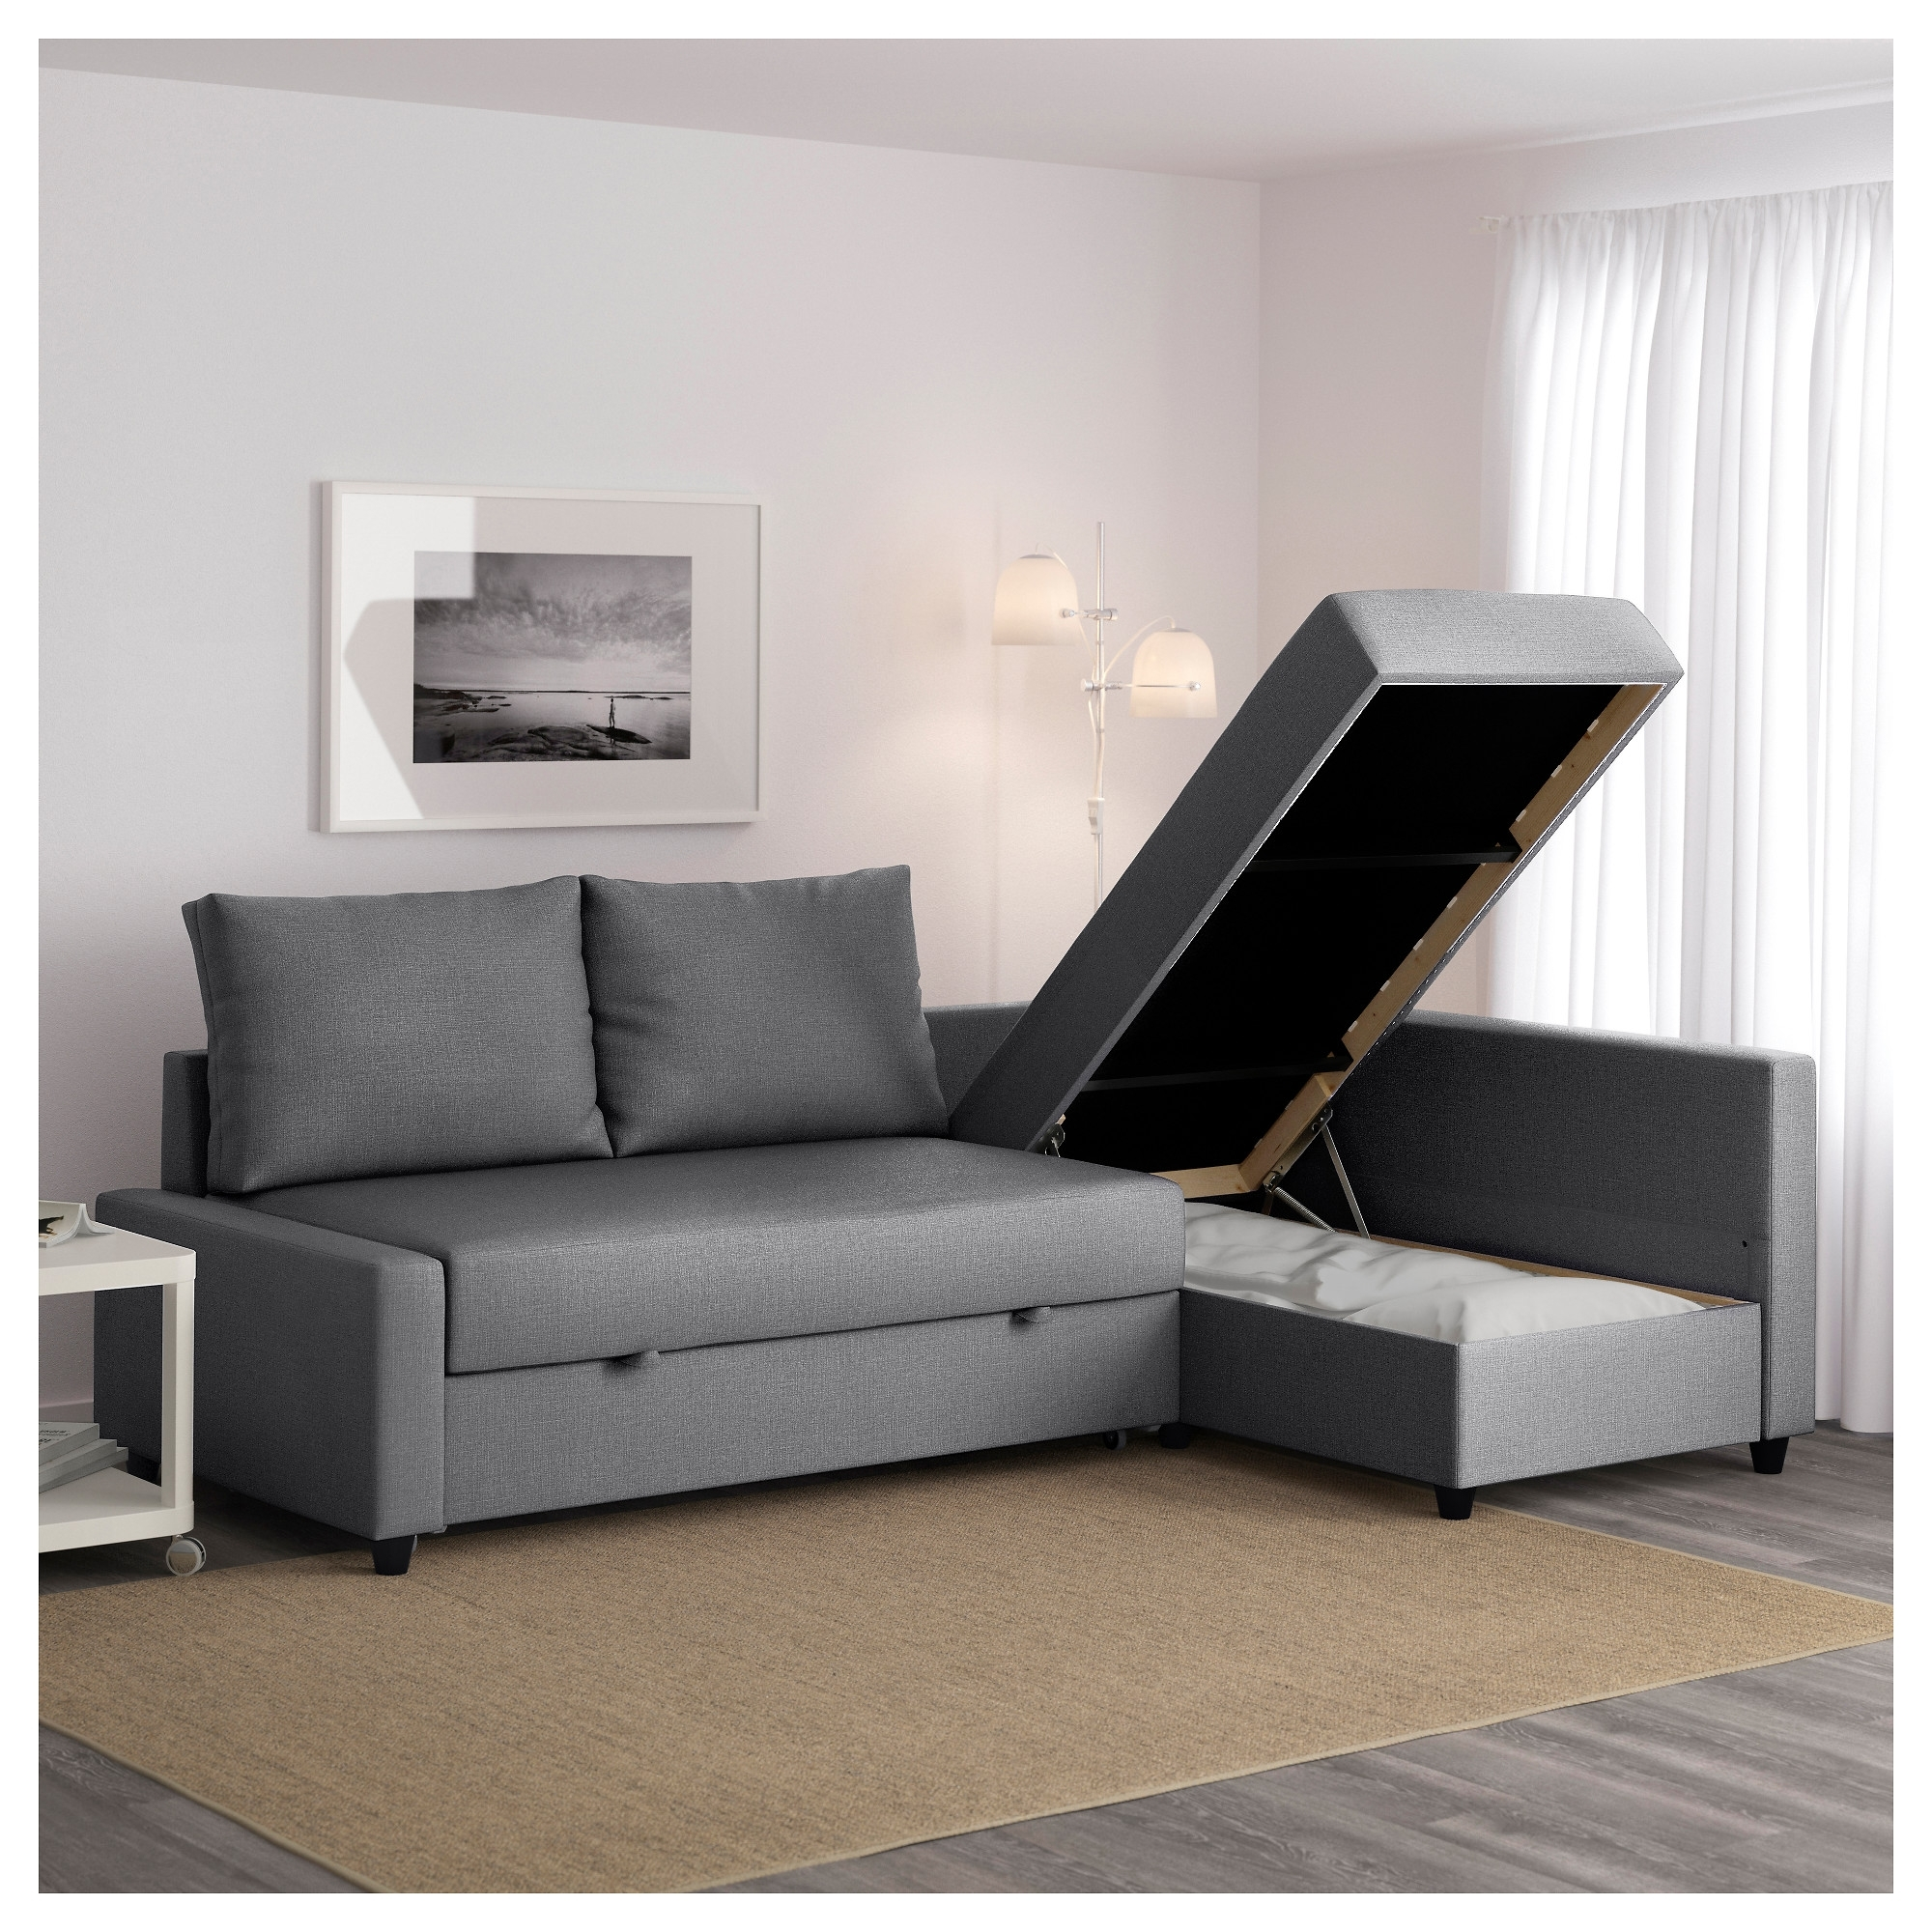 Fashionable Friheten Corner Sofa Bed With Storage Skiftebo Dark Grey – Ikea In Chaise Sofa Beds With Storage (View 11 of 15)